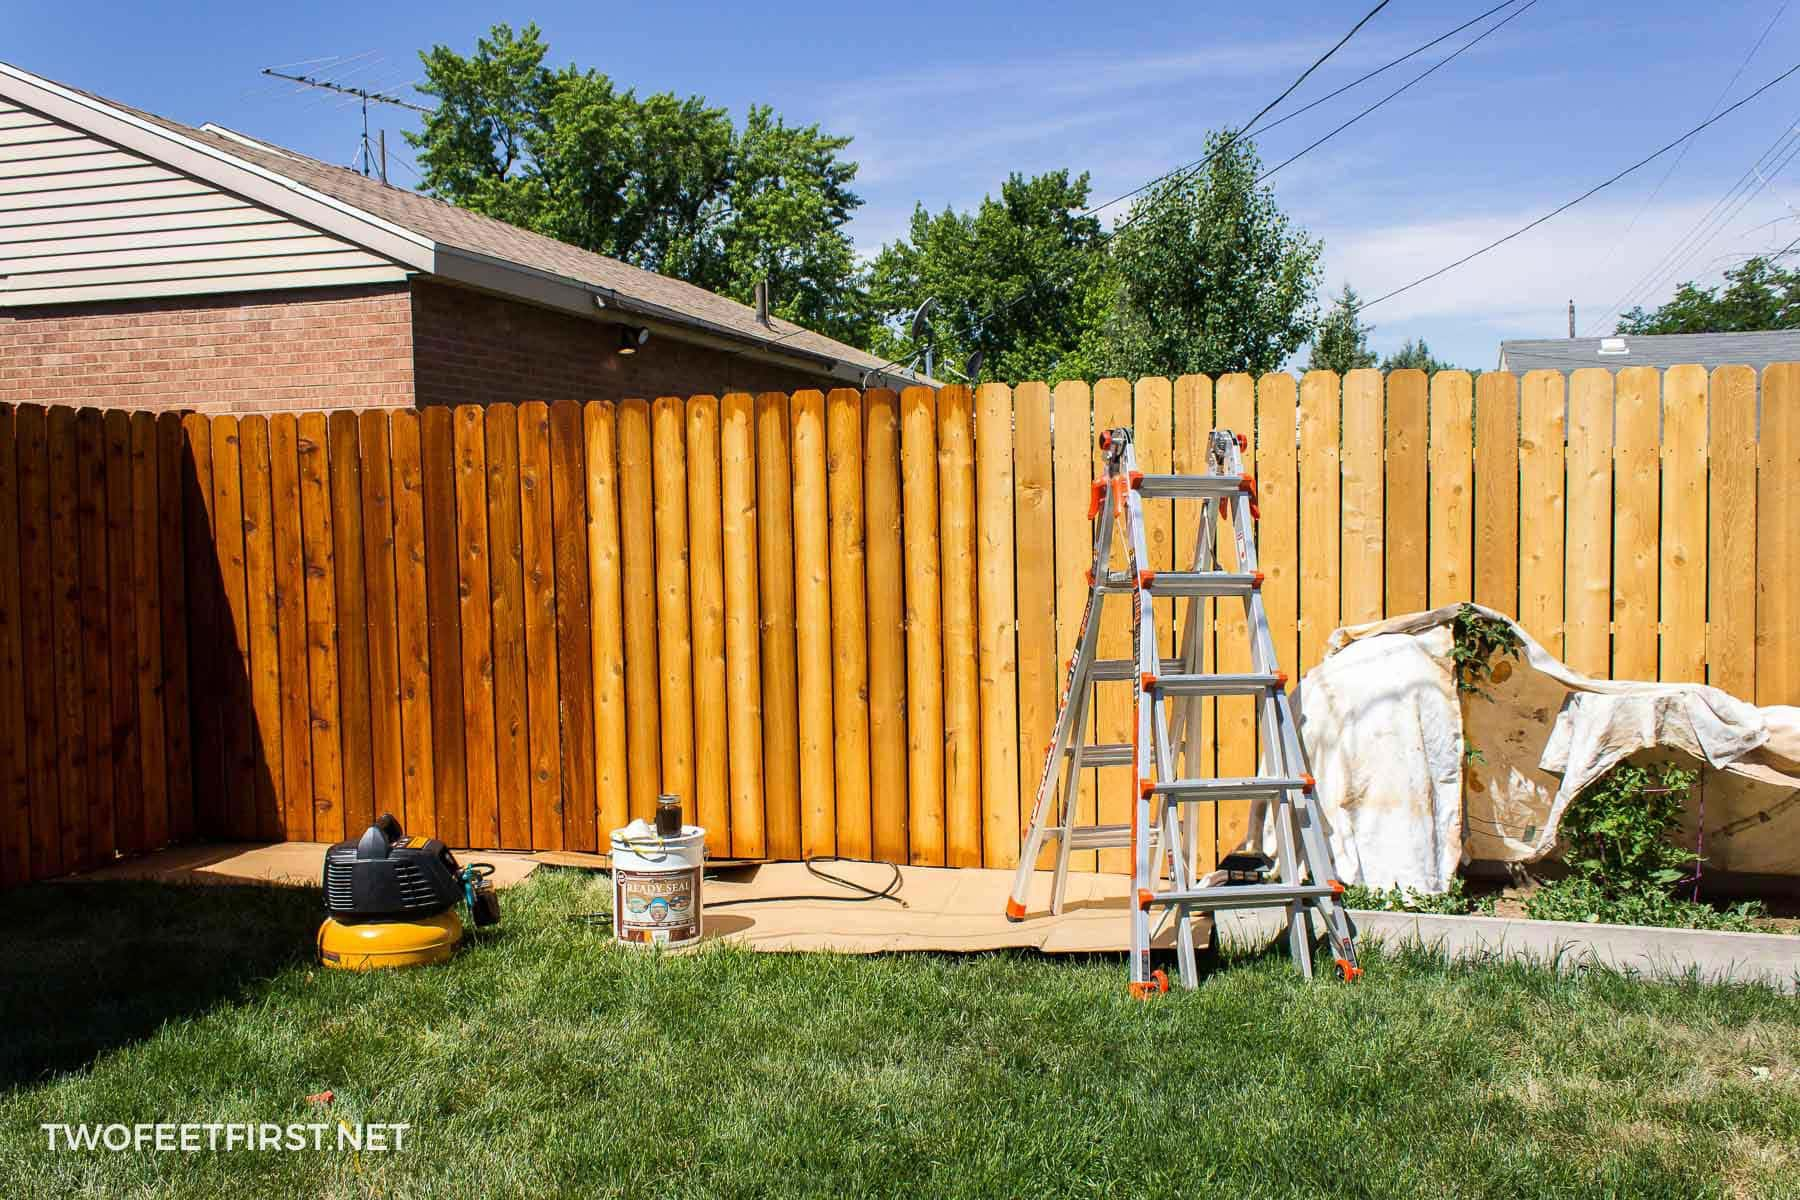 Staining a fence aka waterproofing Best exterior stain for cedar fence